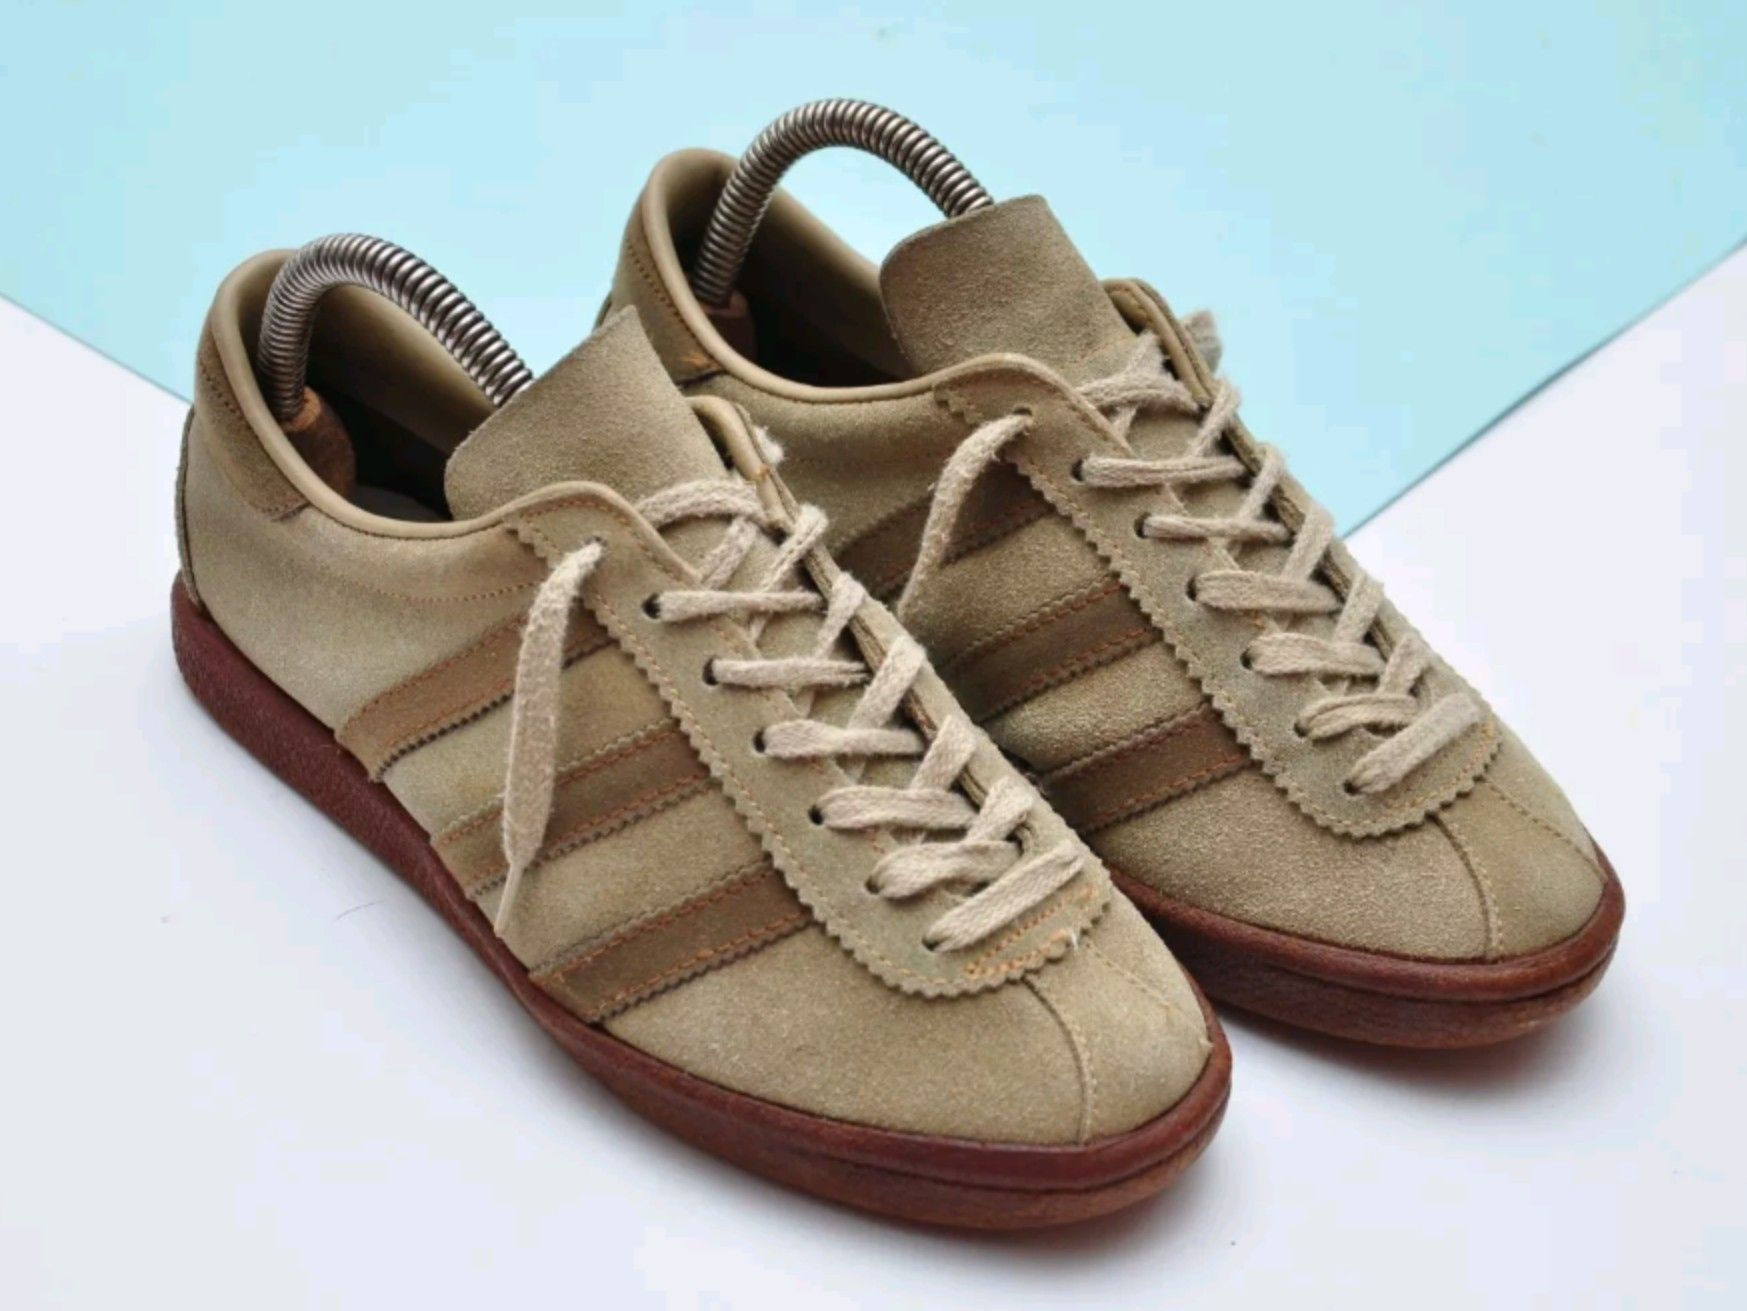 timeless design 42046 e5479 Vintage Adidas Riviera from the early 80 s, so approx 35+ years old -  qualitat